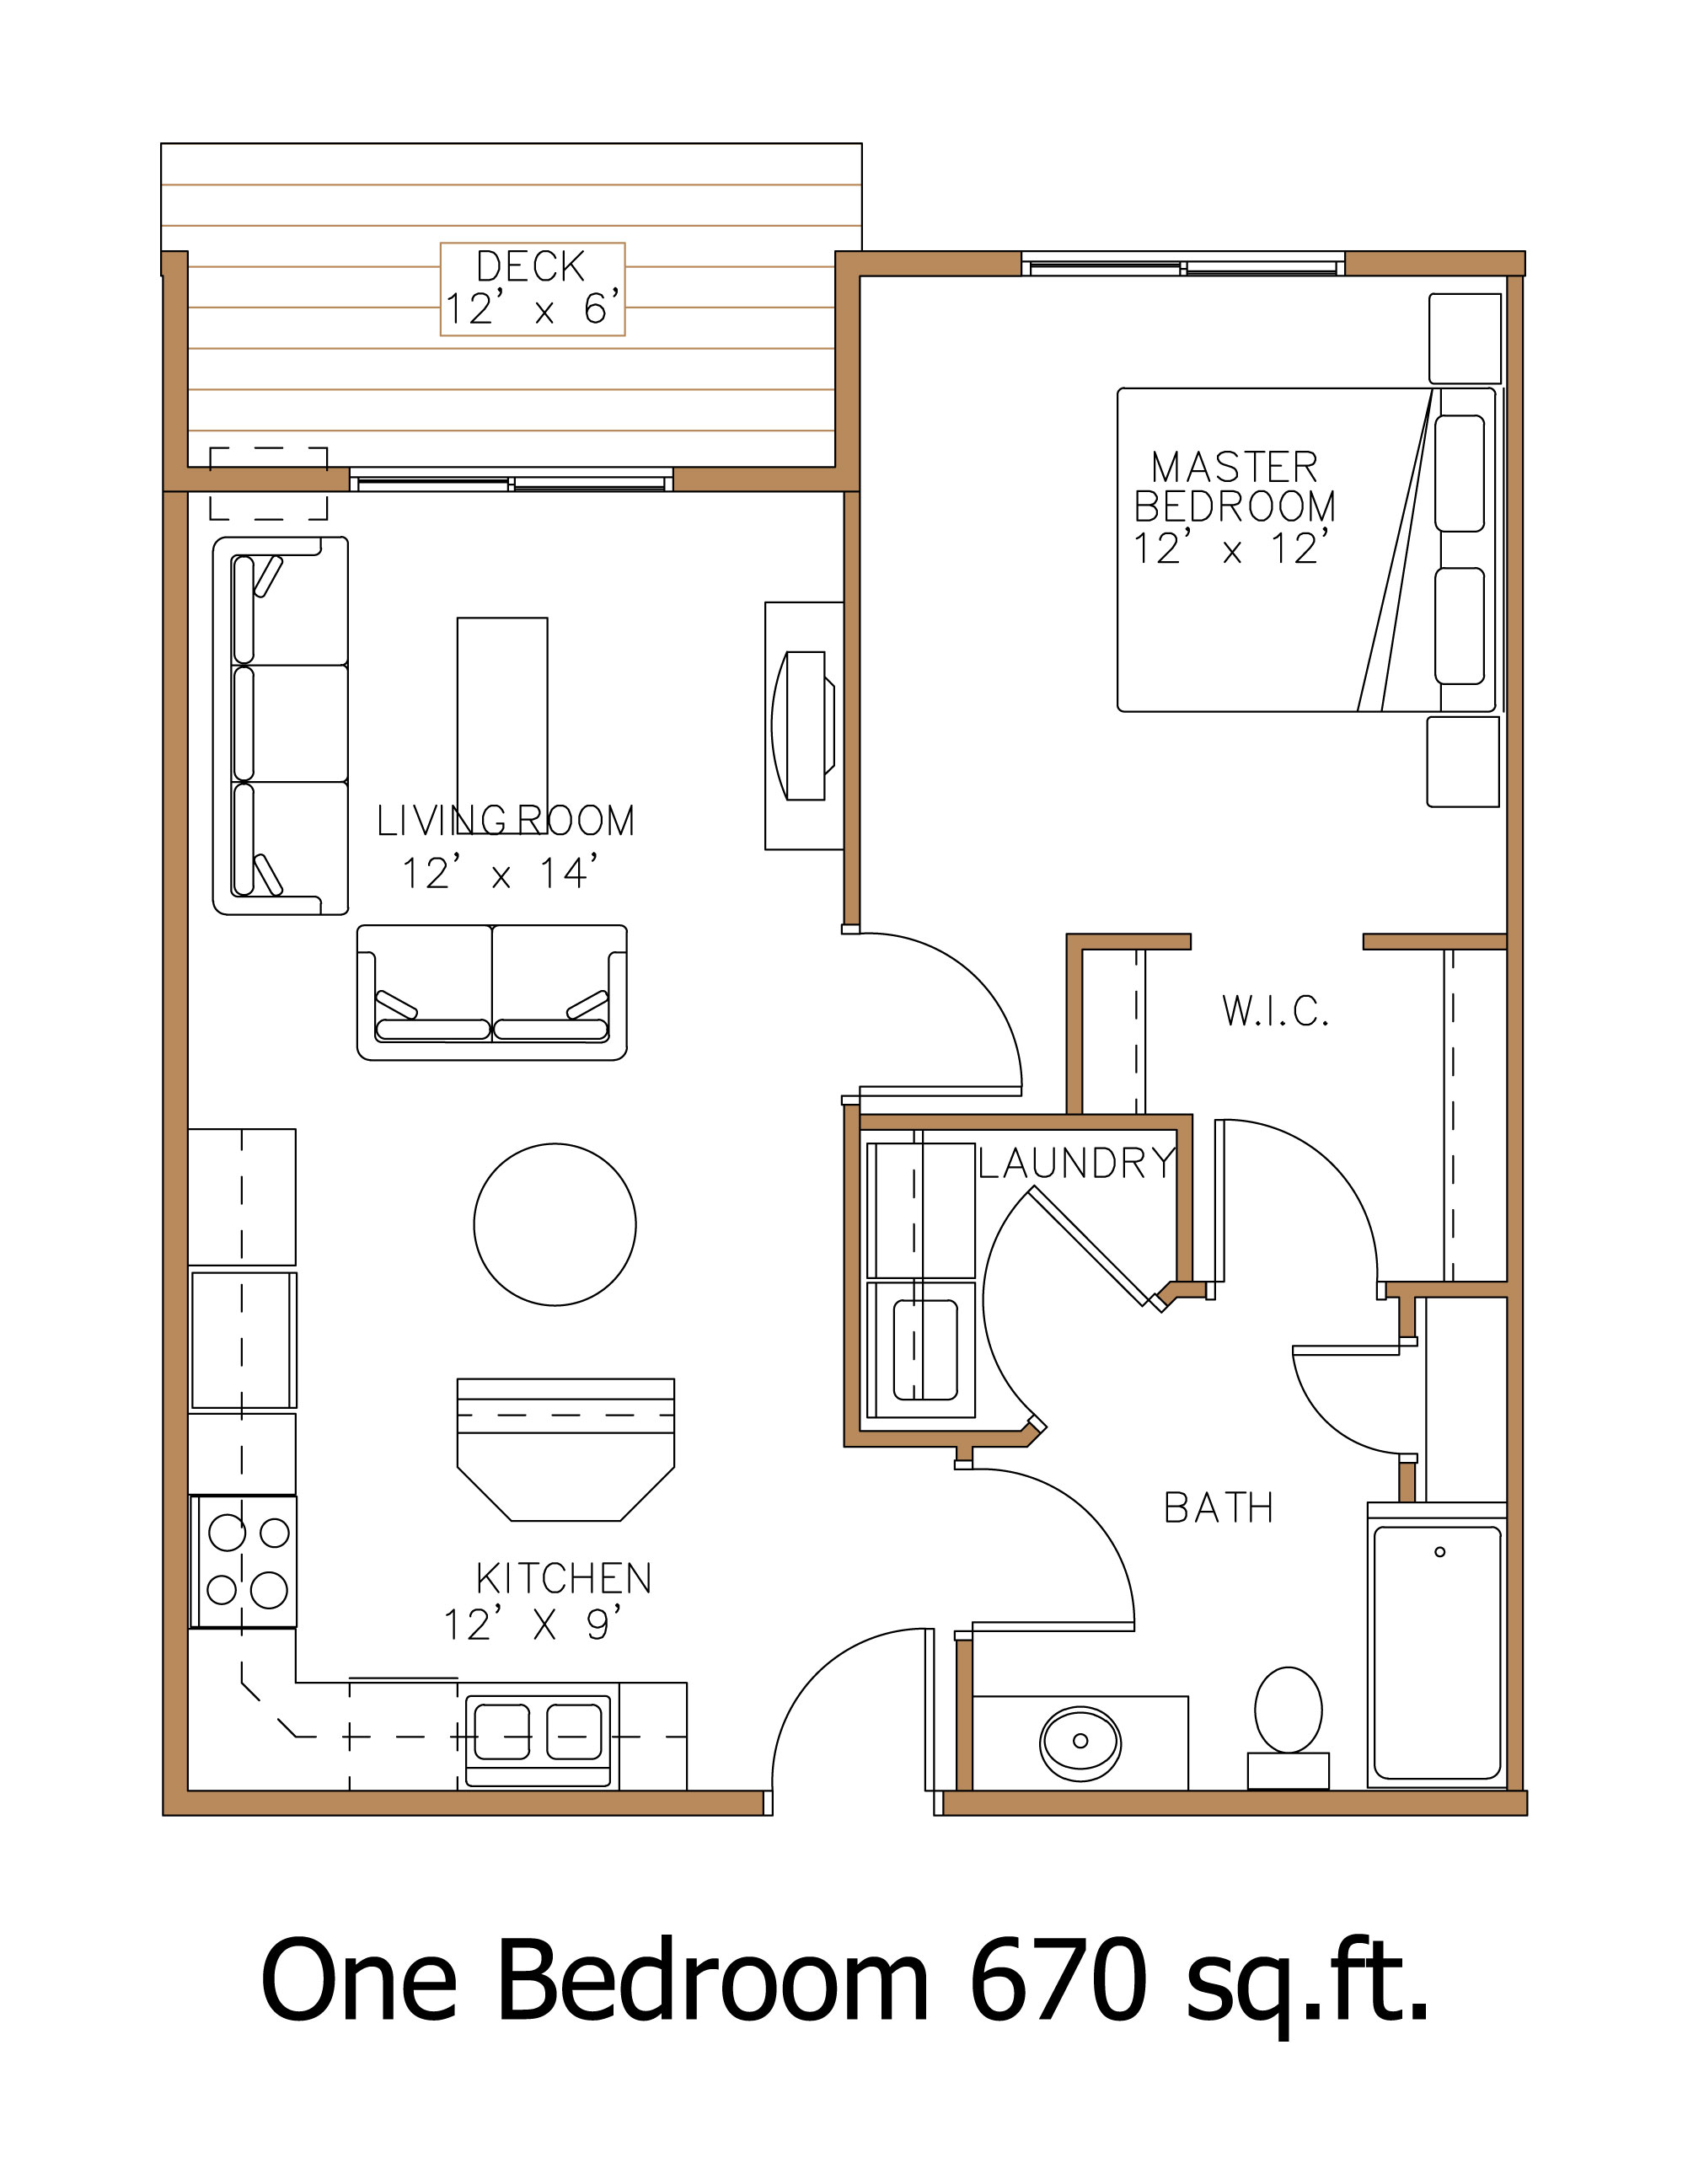 Hawley mn apartment floor plans great north properties llc for One bedroom condo design